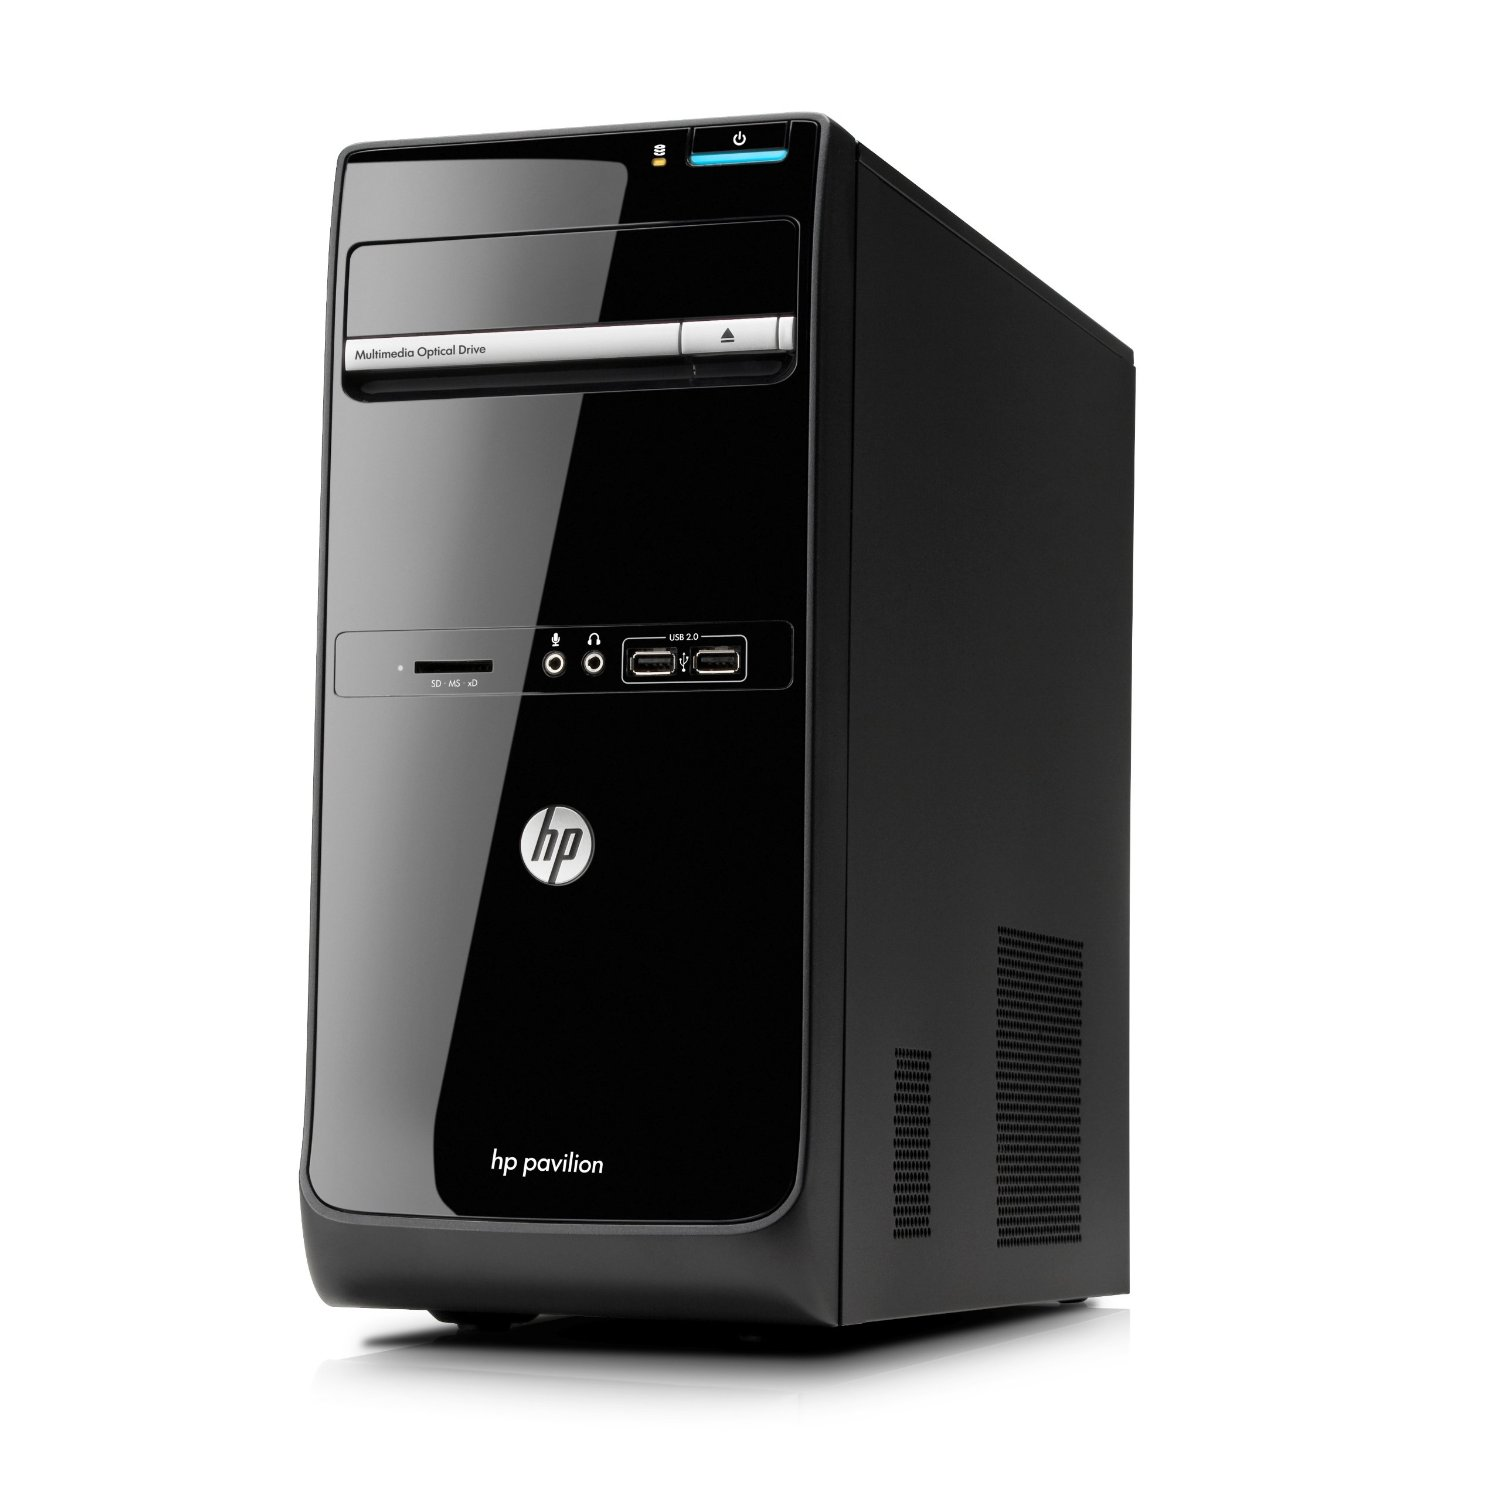 hp pavilion p6 2390 desktop review desktop computers review. Black Bedroom Furniture Sets. Home Design Ideas